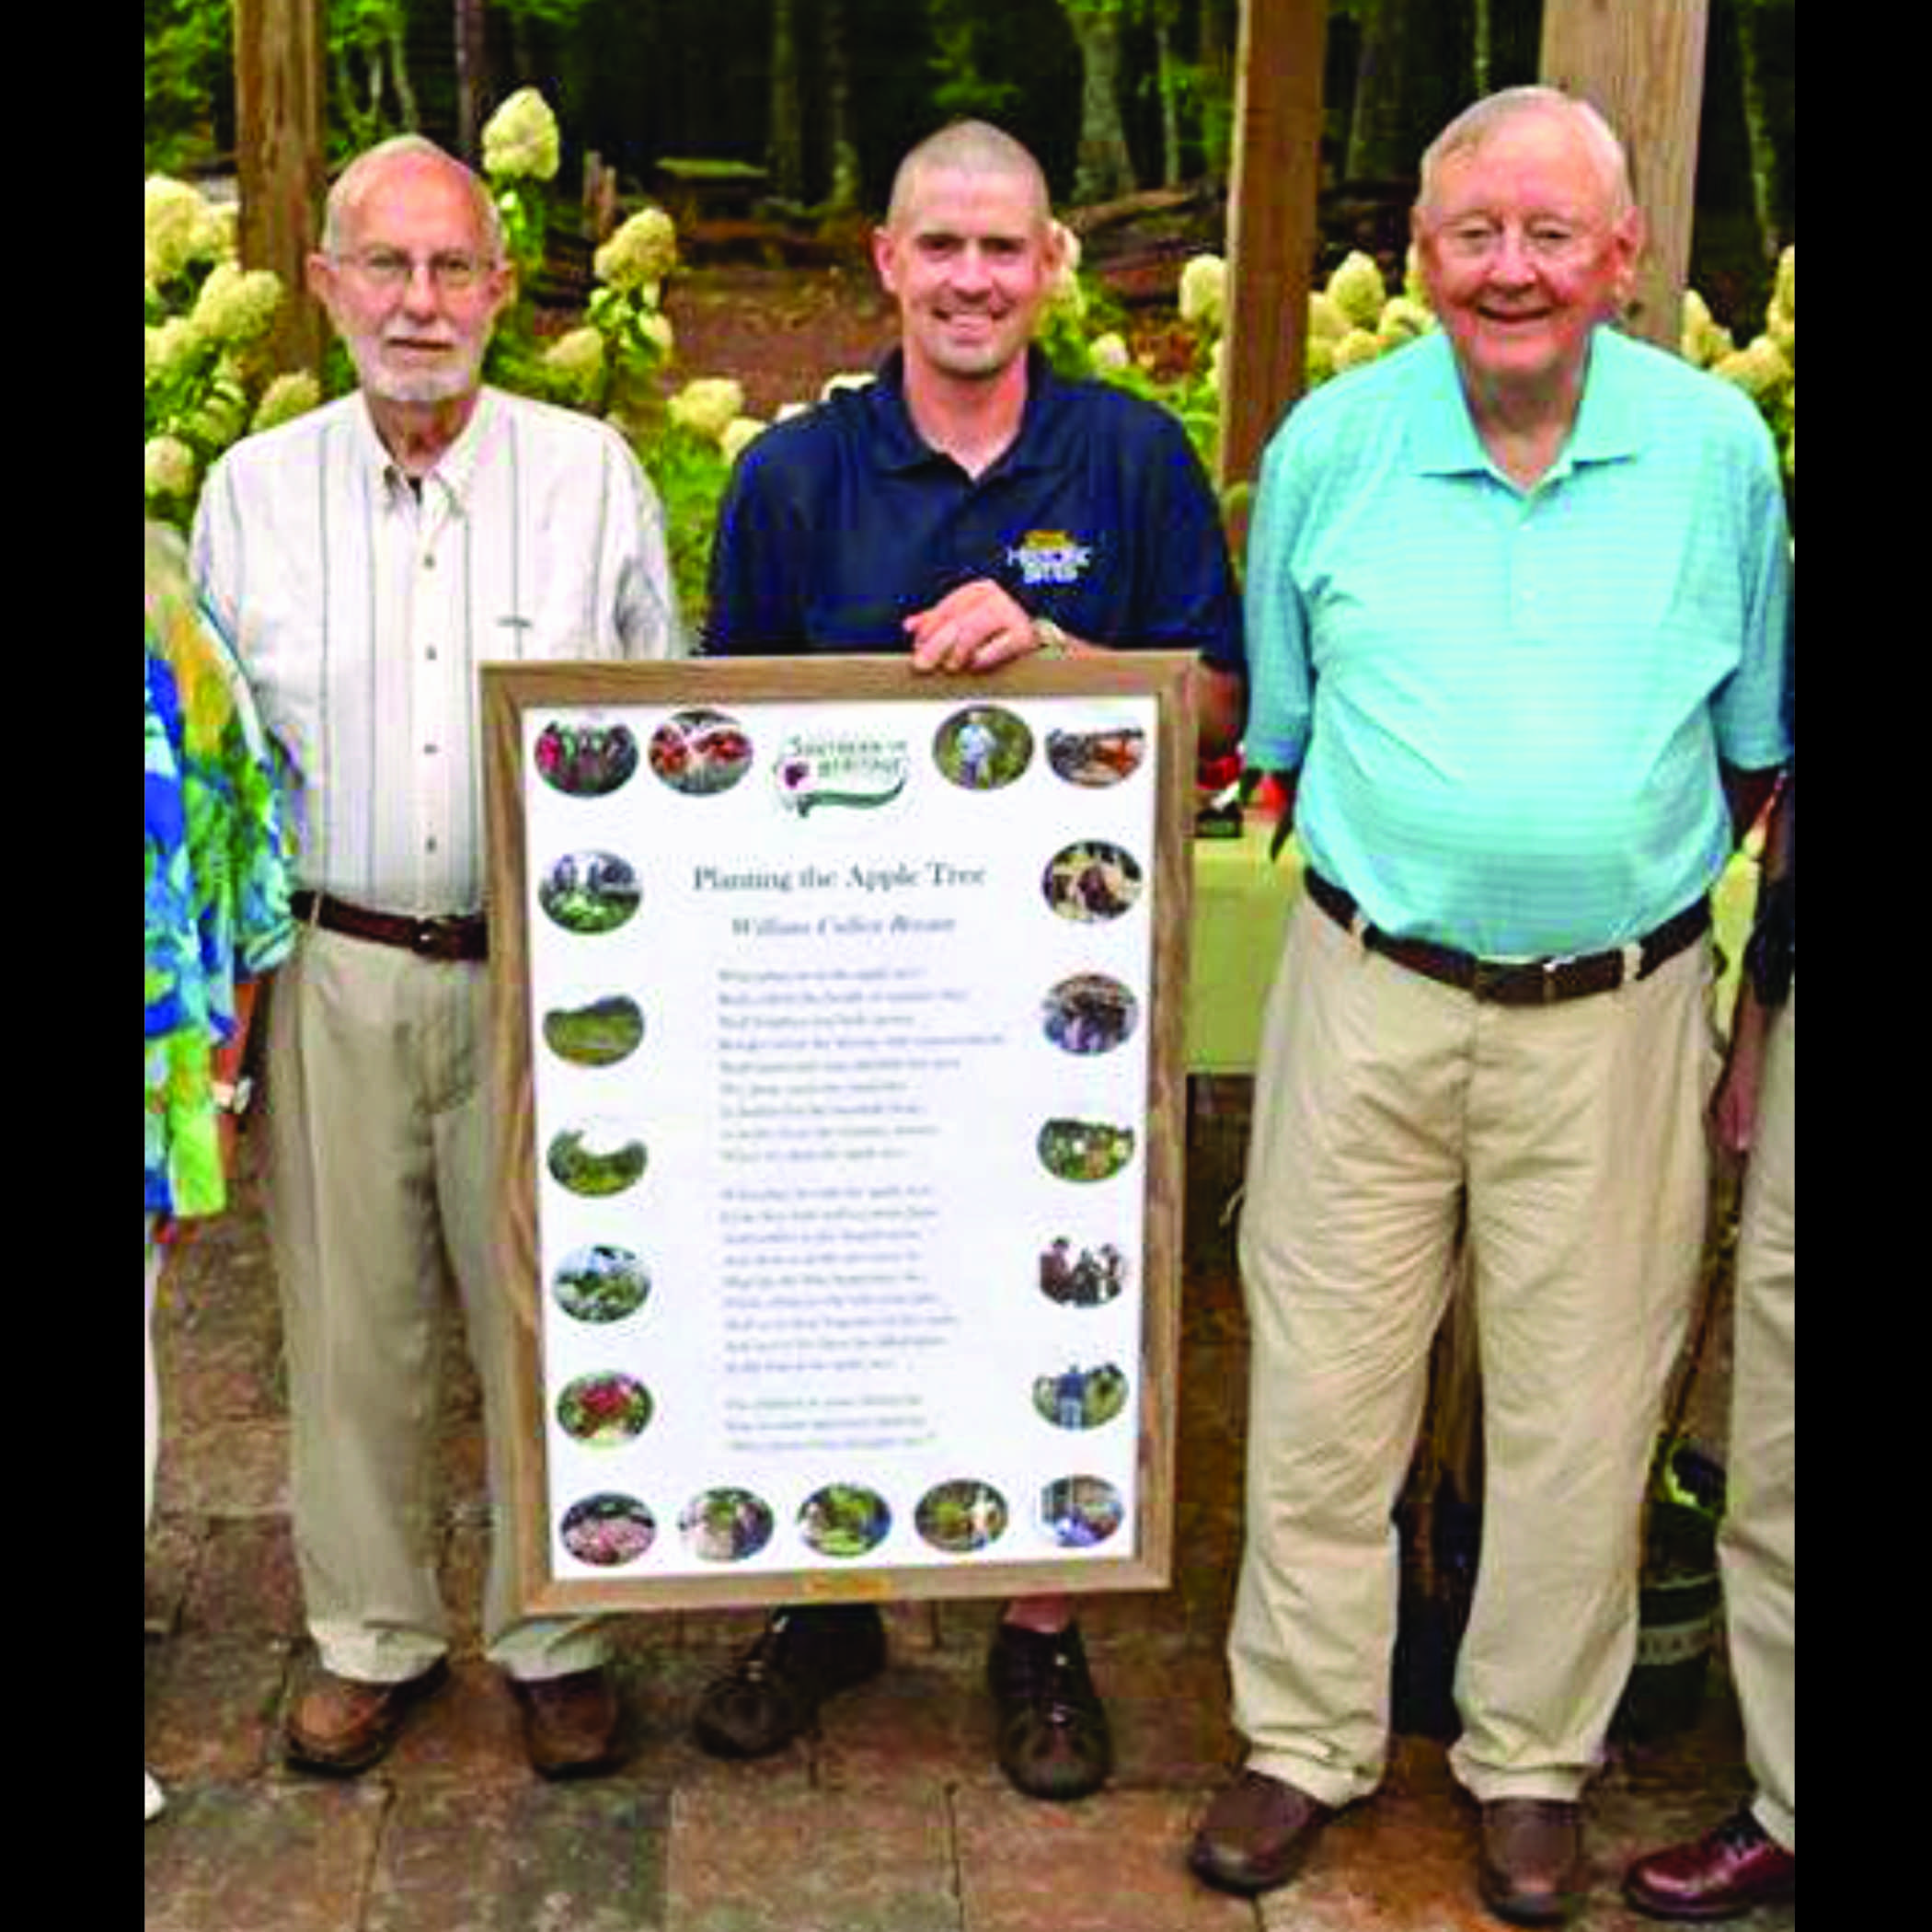 three men stand with a framed poem about an apple tree